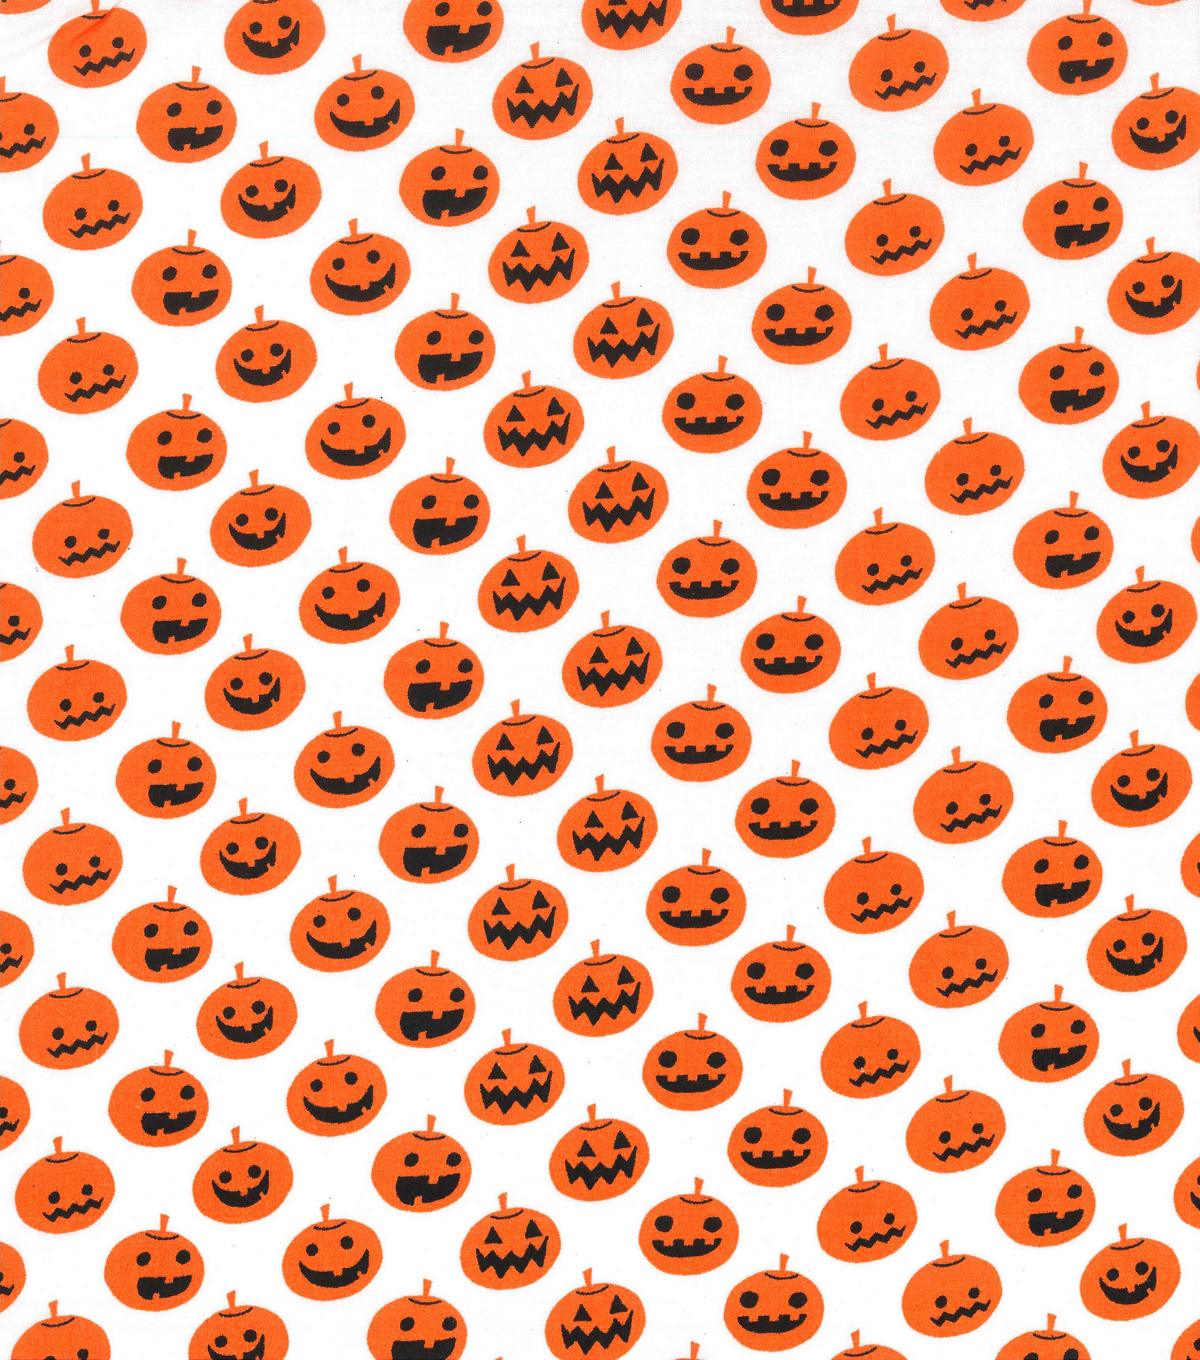 Holiday Showcase™ Halloween Cotton Fabric 43''-Large Pumpkins on White